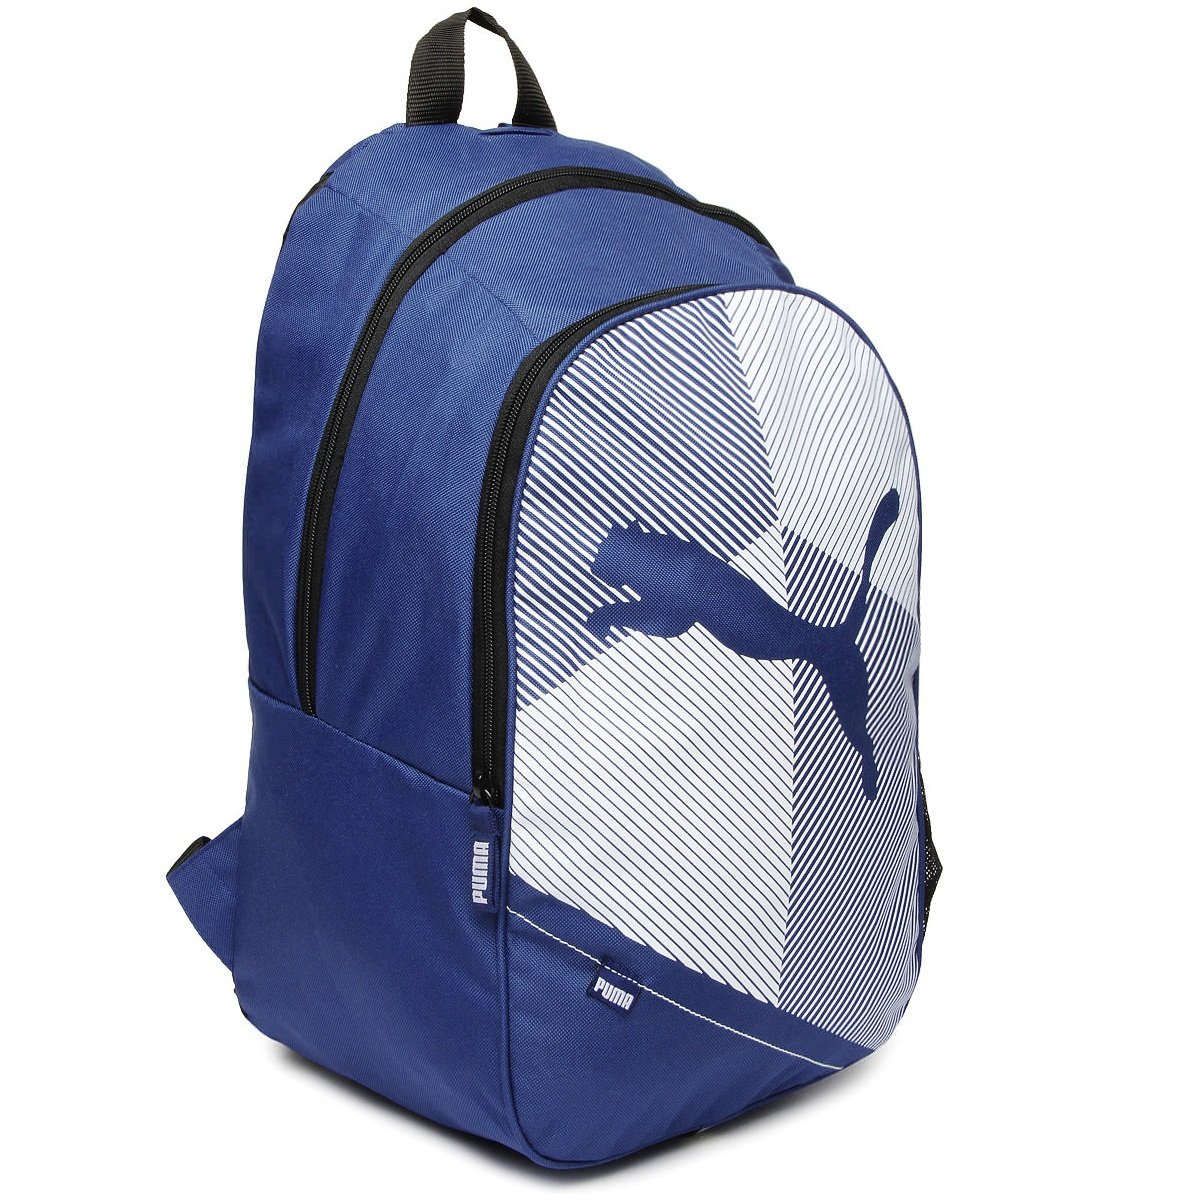 5ba59e5170 Puma Unisex Echo Plus Navy   White 27 L Backpack  Amazon.in  Bags ...